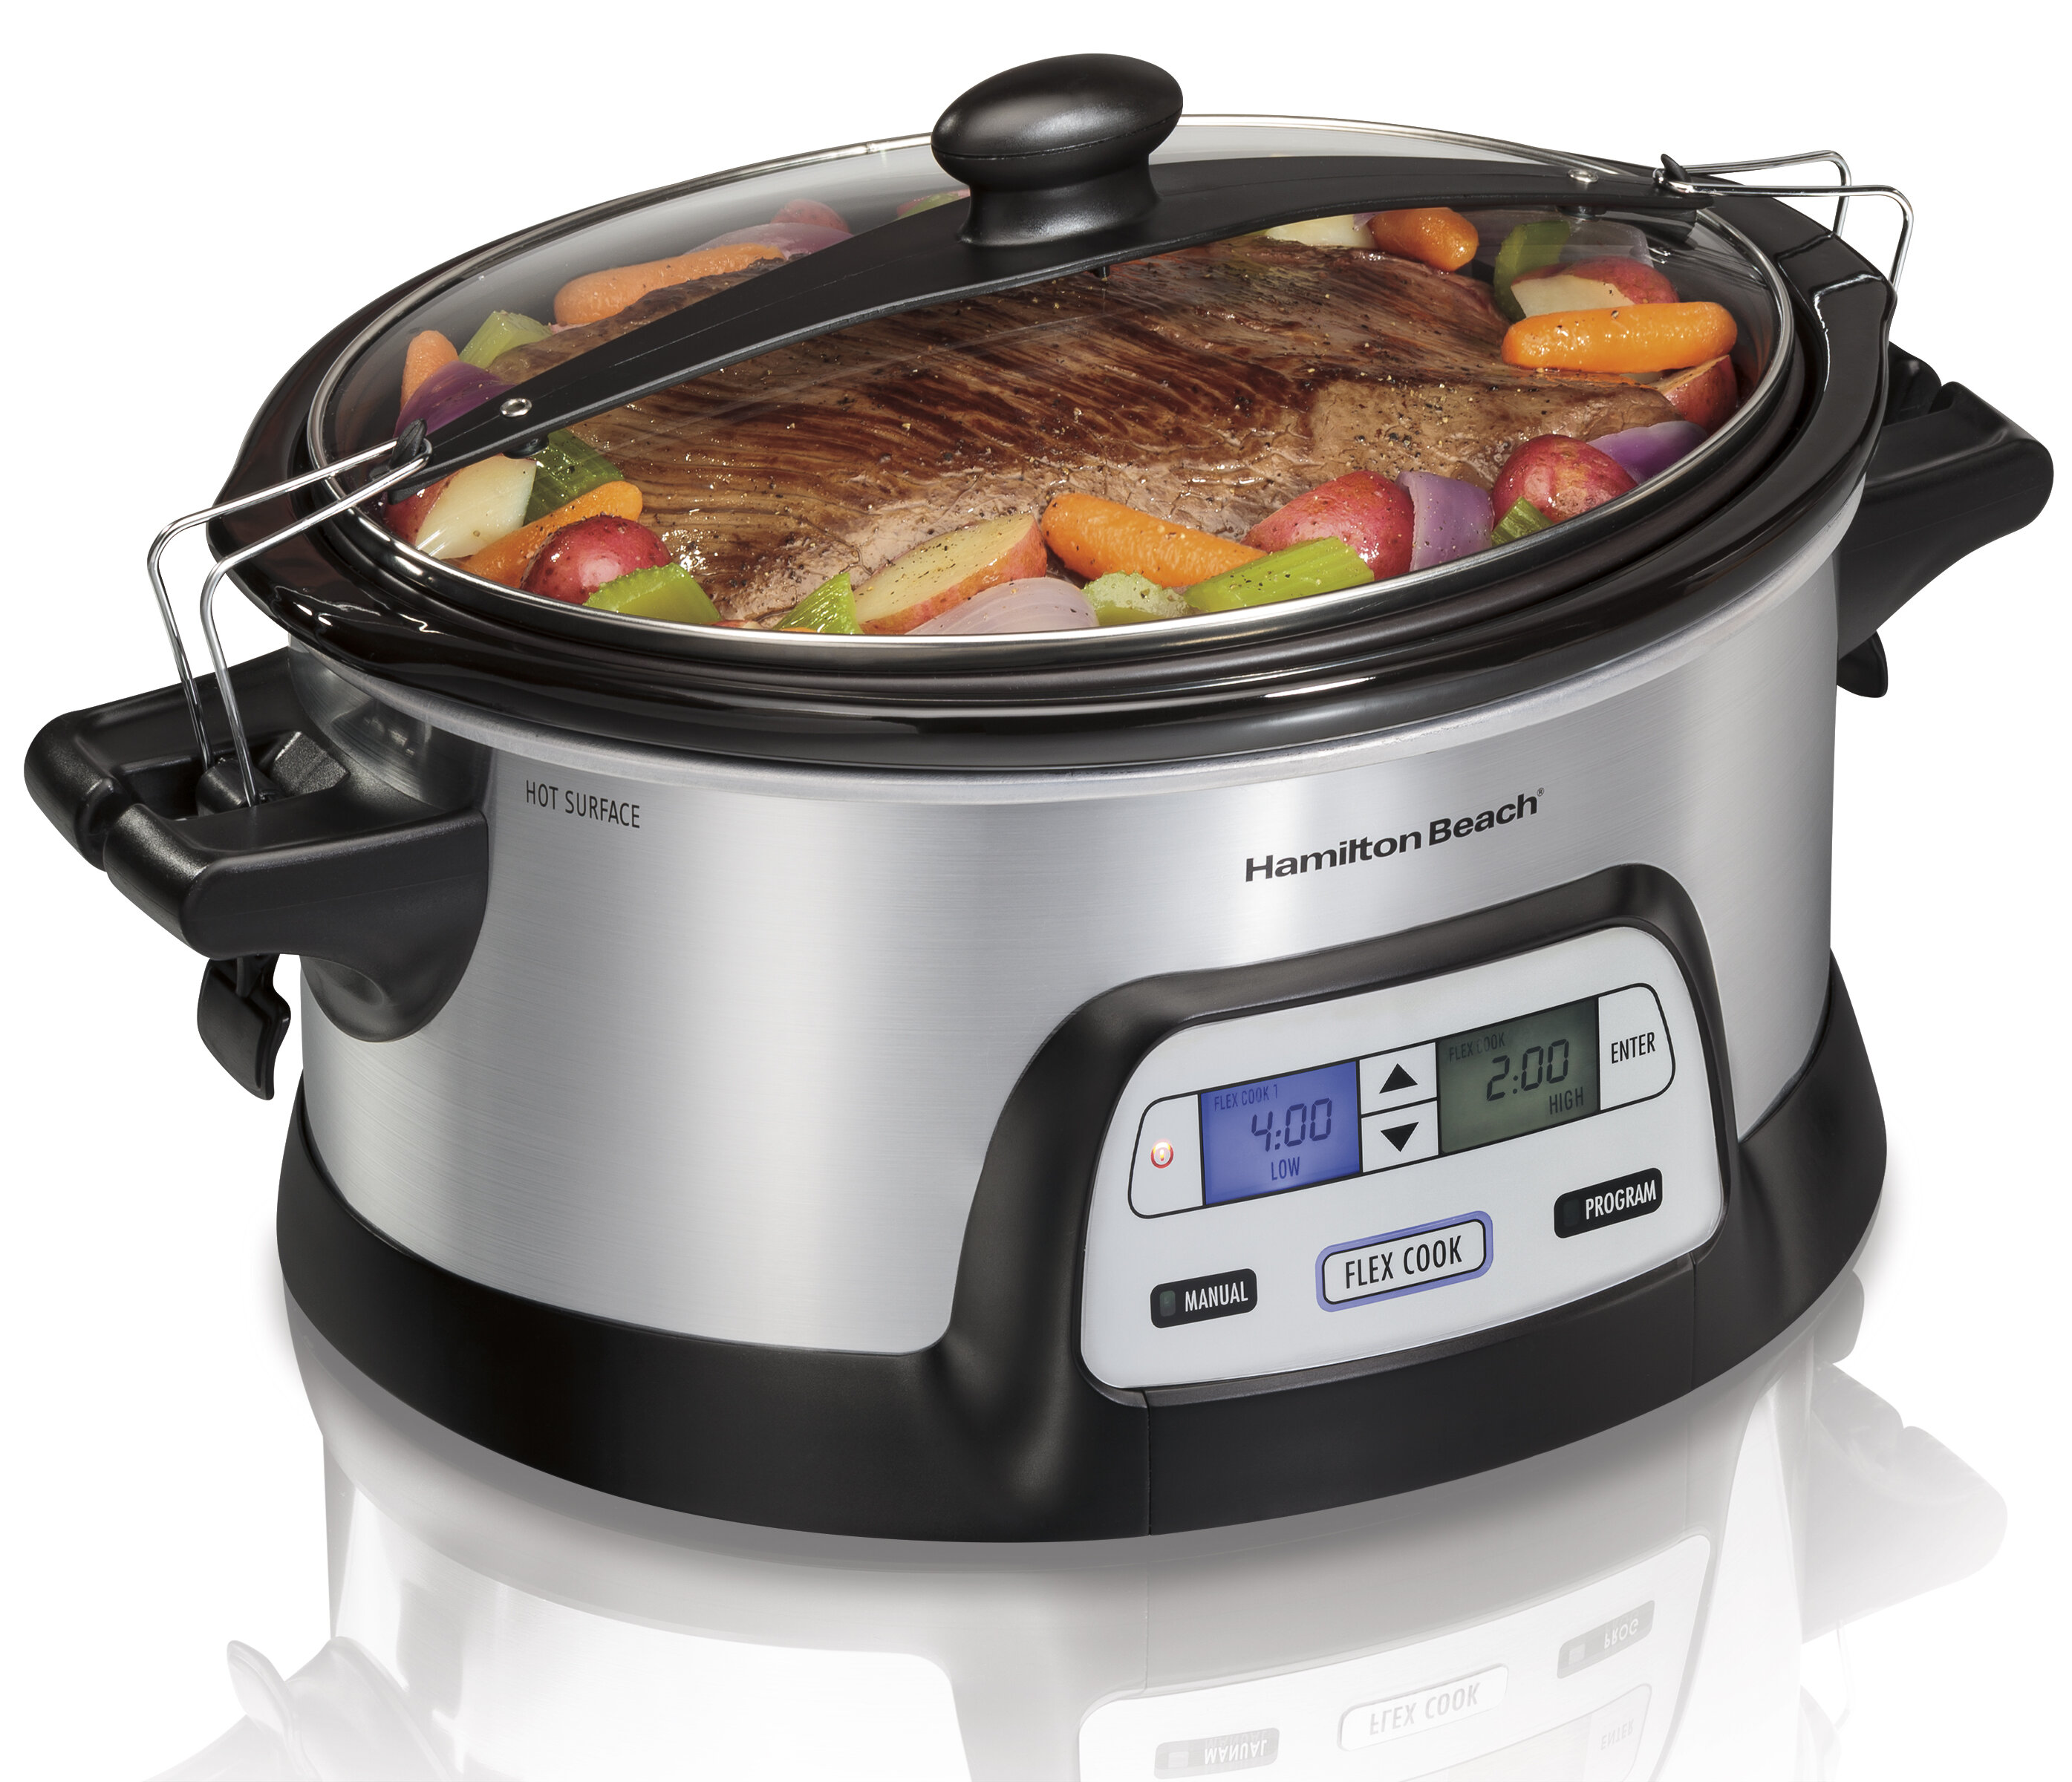 Hamilton Beach 6 Qt Stay or Go Programmable FlexCook Slow Cooker